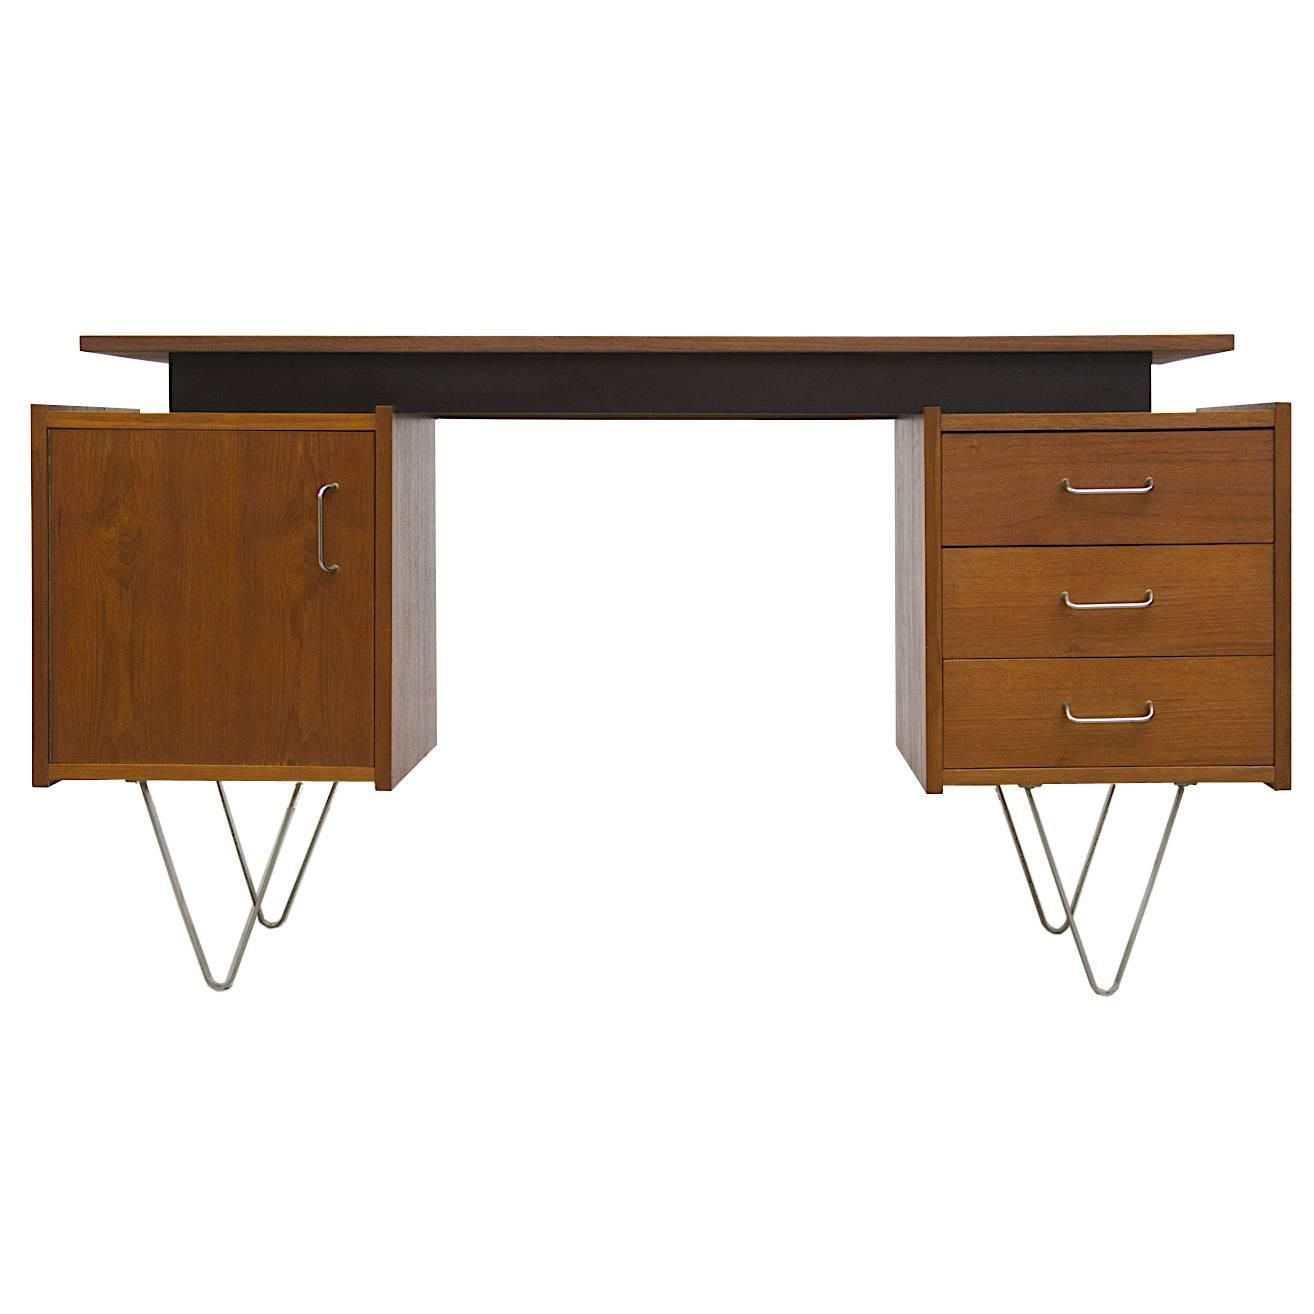 Cees Braakman Desk with Hairpin Legs at 1stdibs